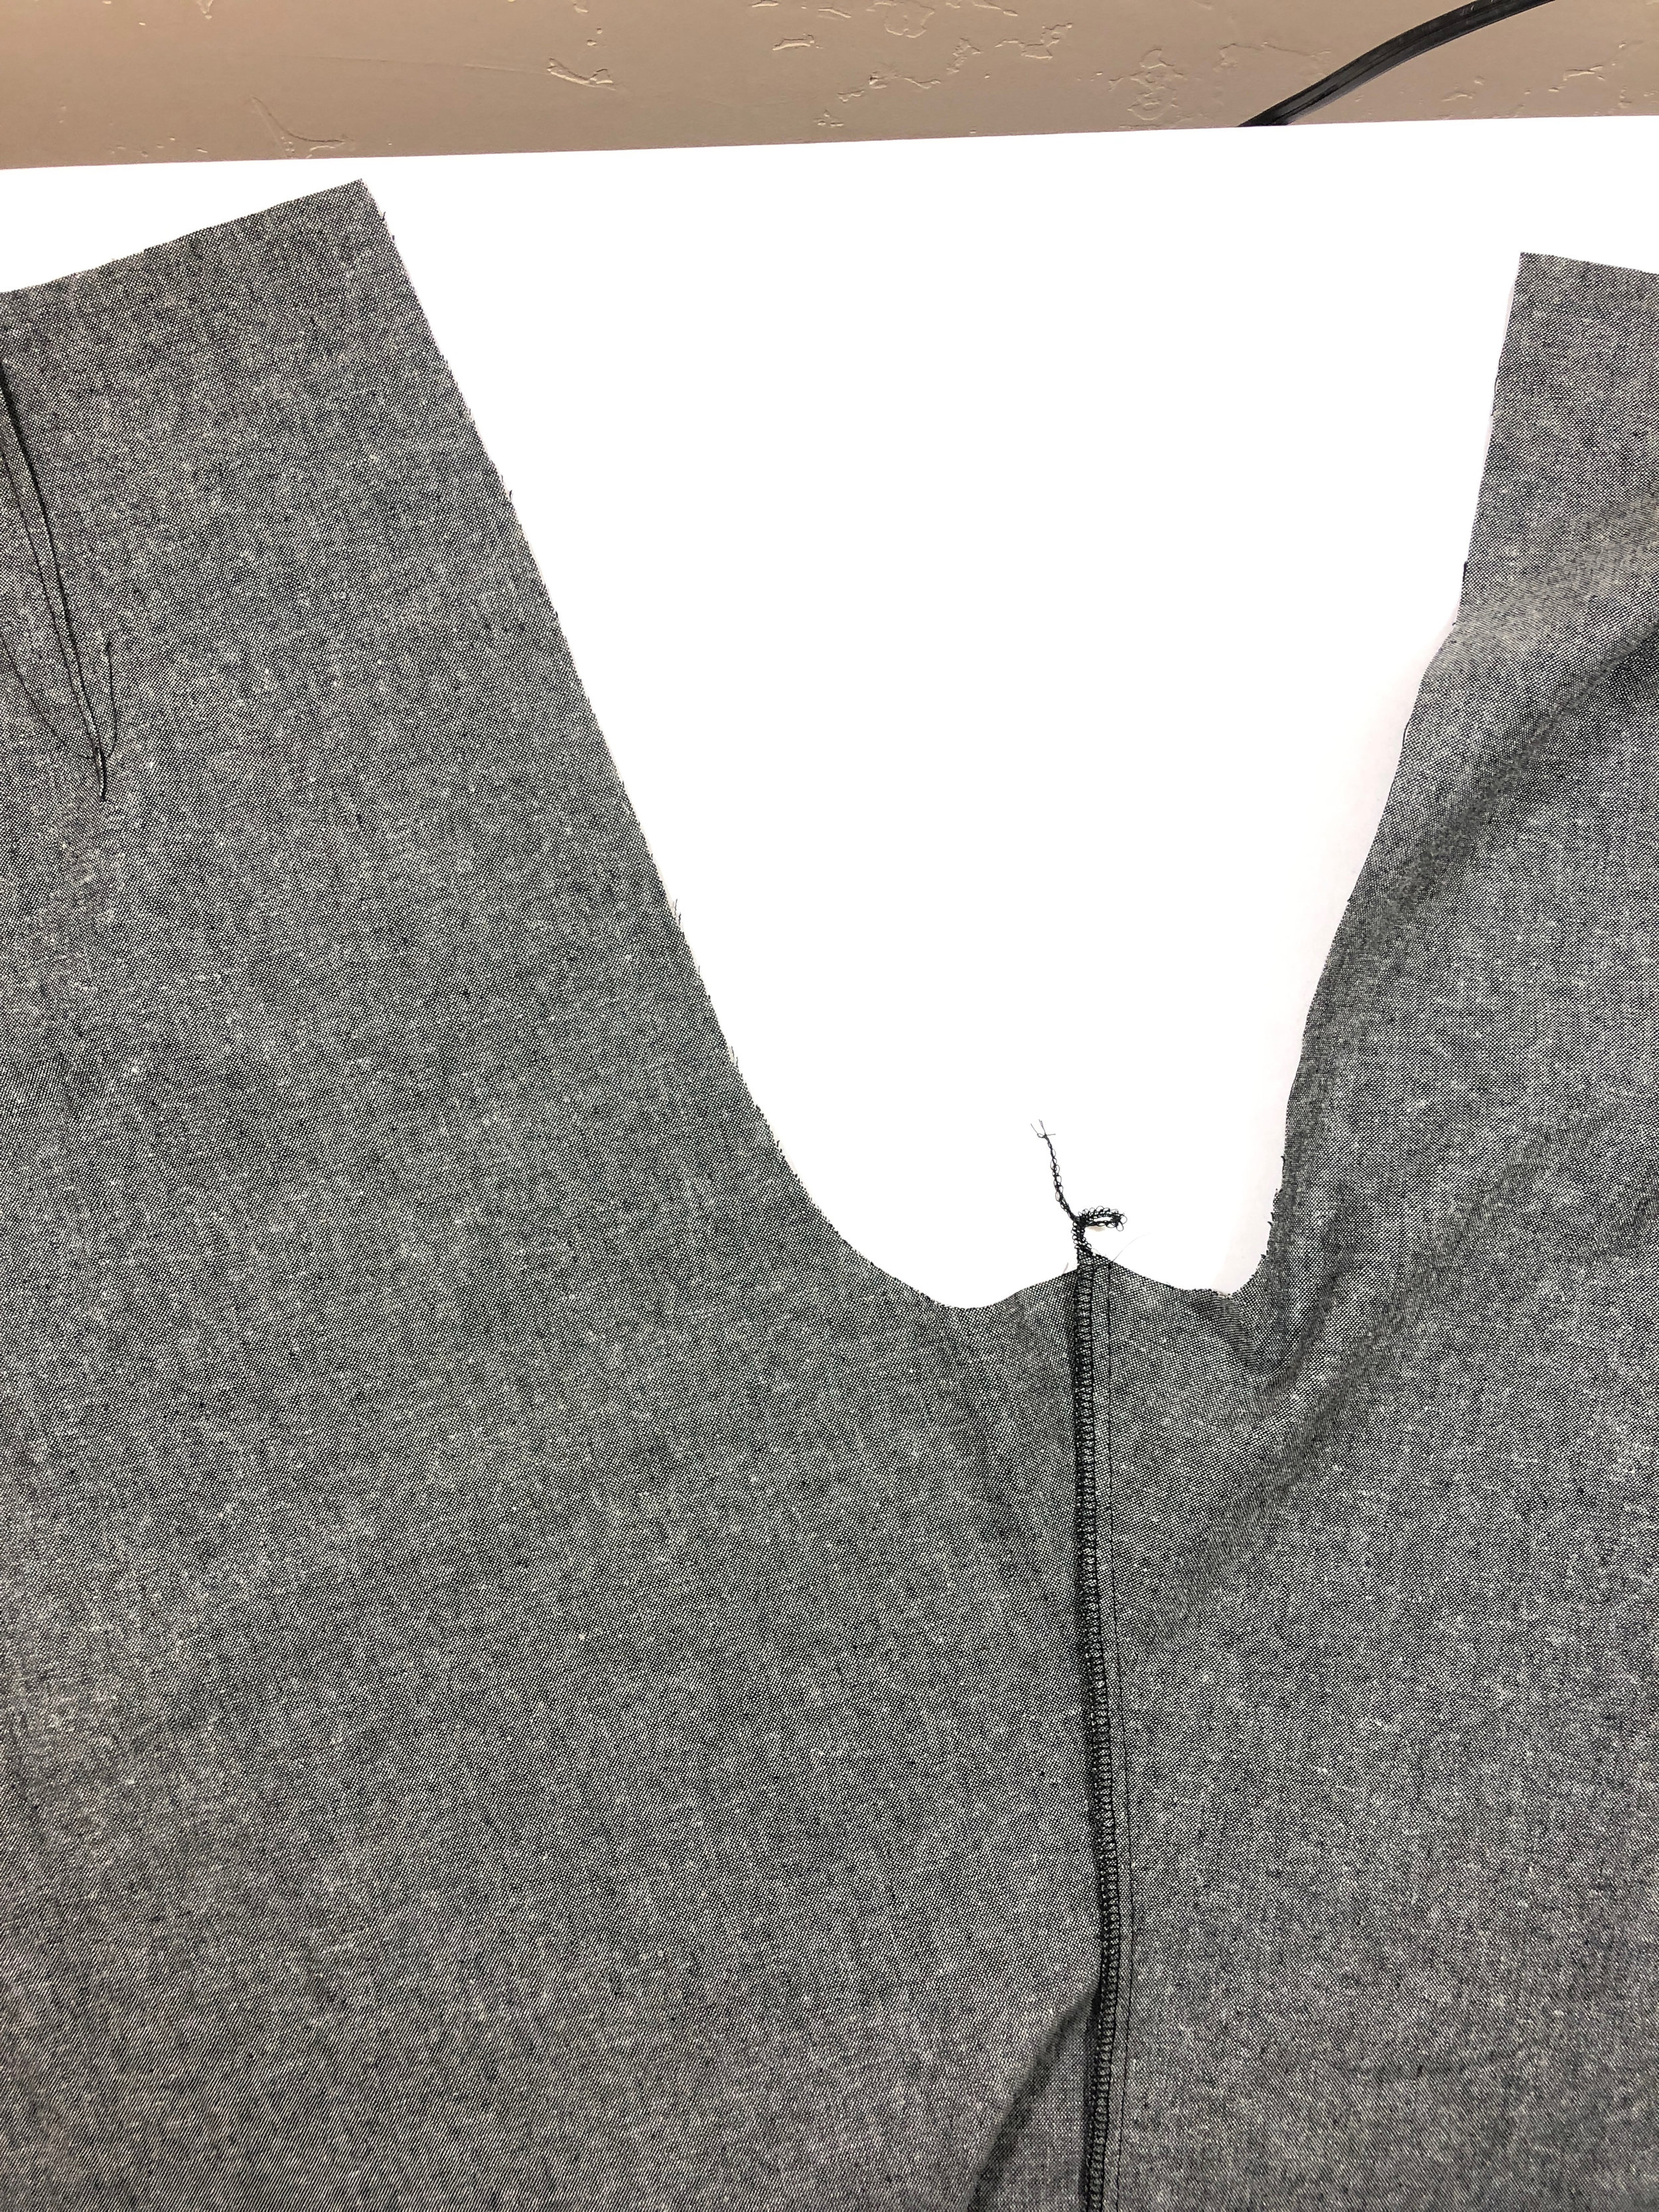 23. Serge/finish this seam, and press it towards the back pant leg.